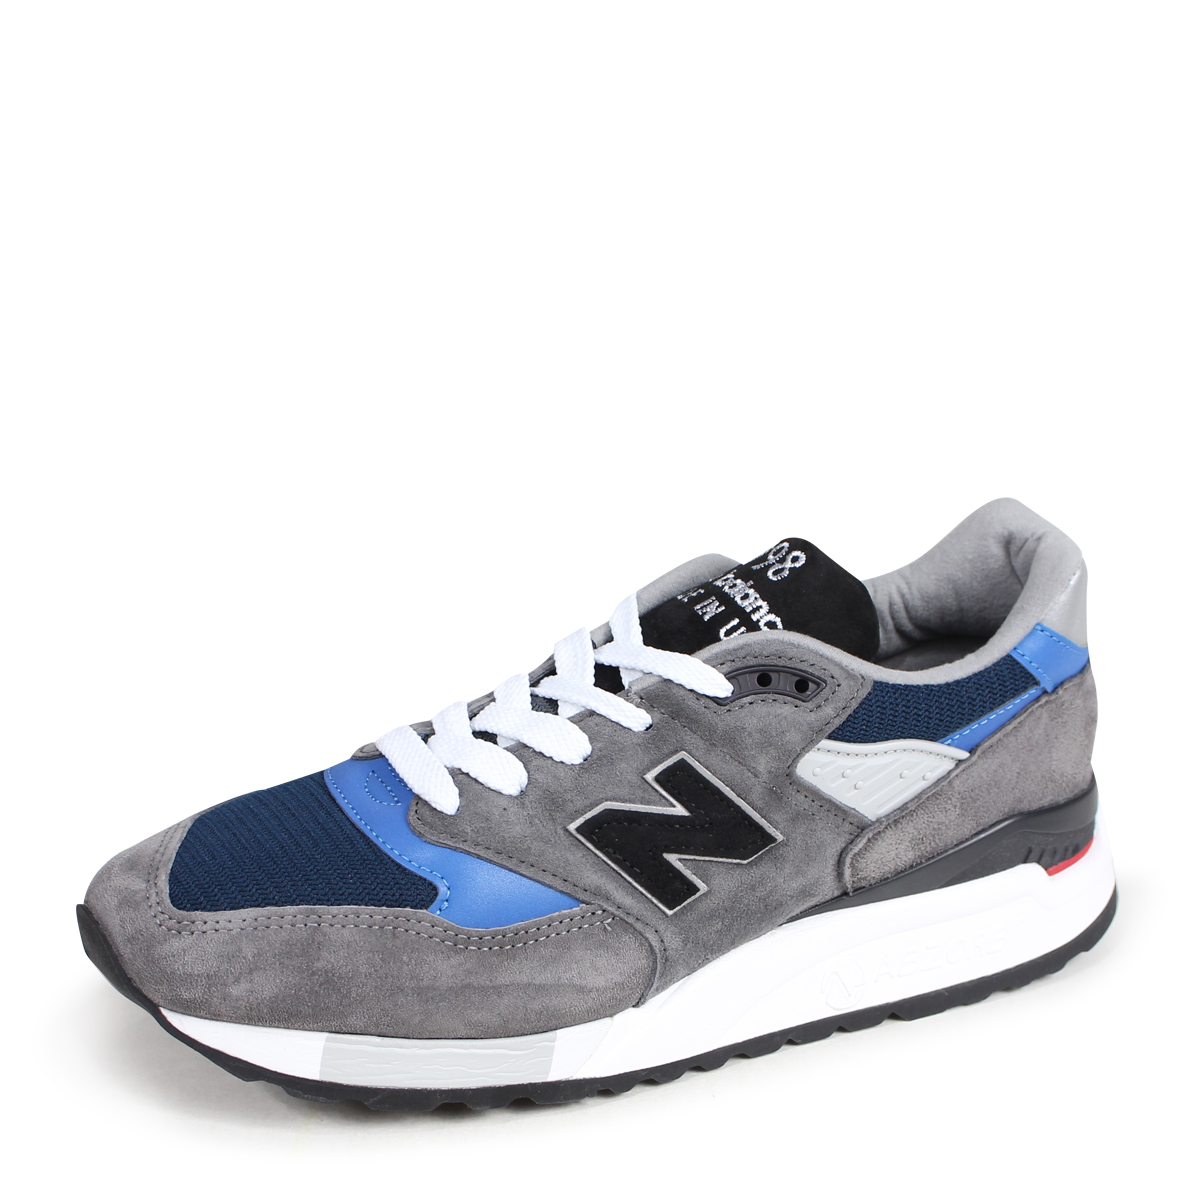 half off 454f9 e311f new balance M998NF New Balance 998 men's sneakers D Wise MADE IN USA gray  [9/13 Shinnyu load] [189]